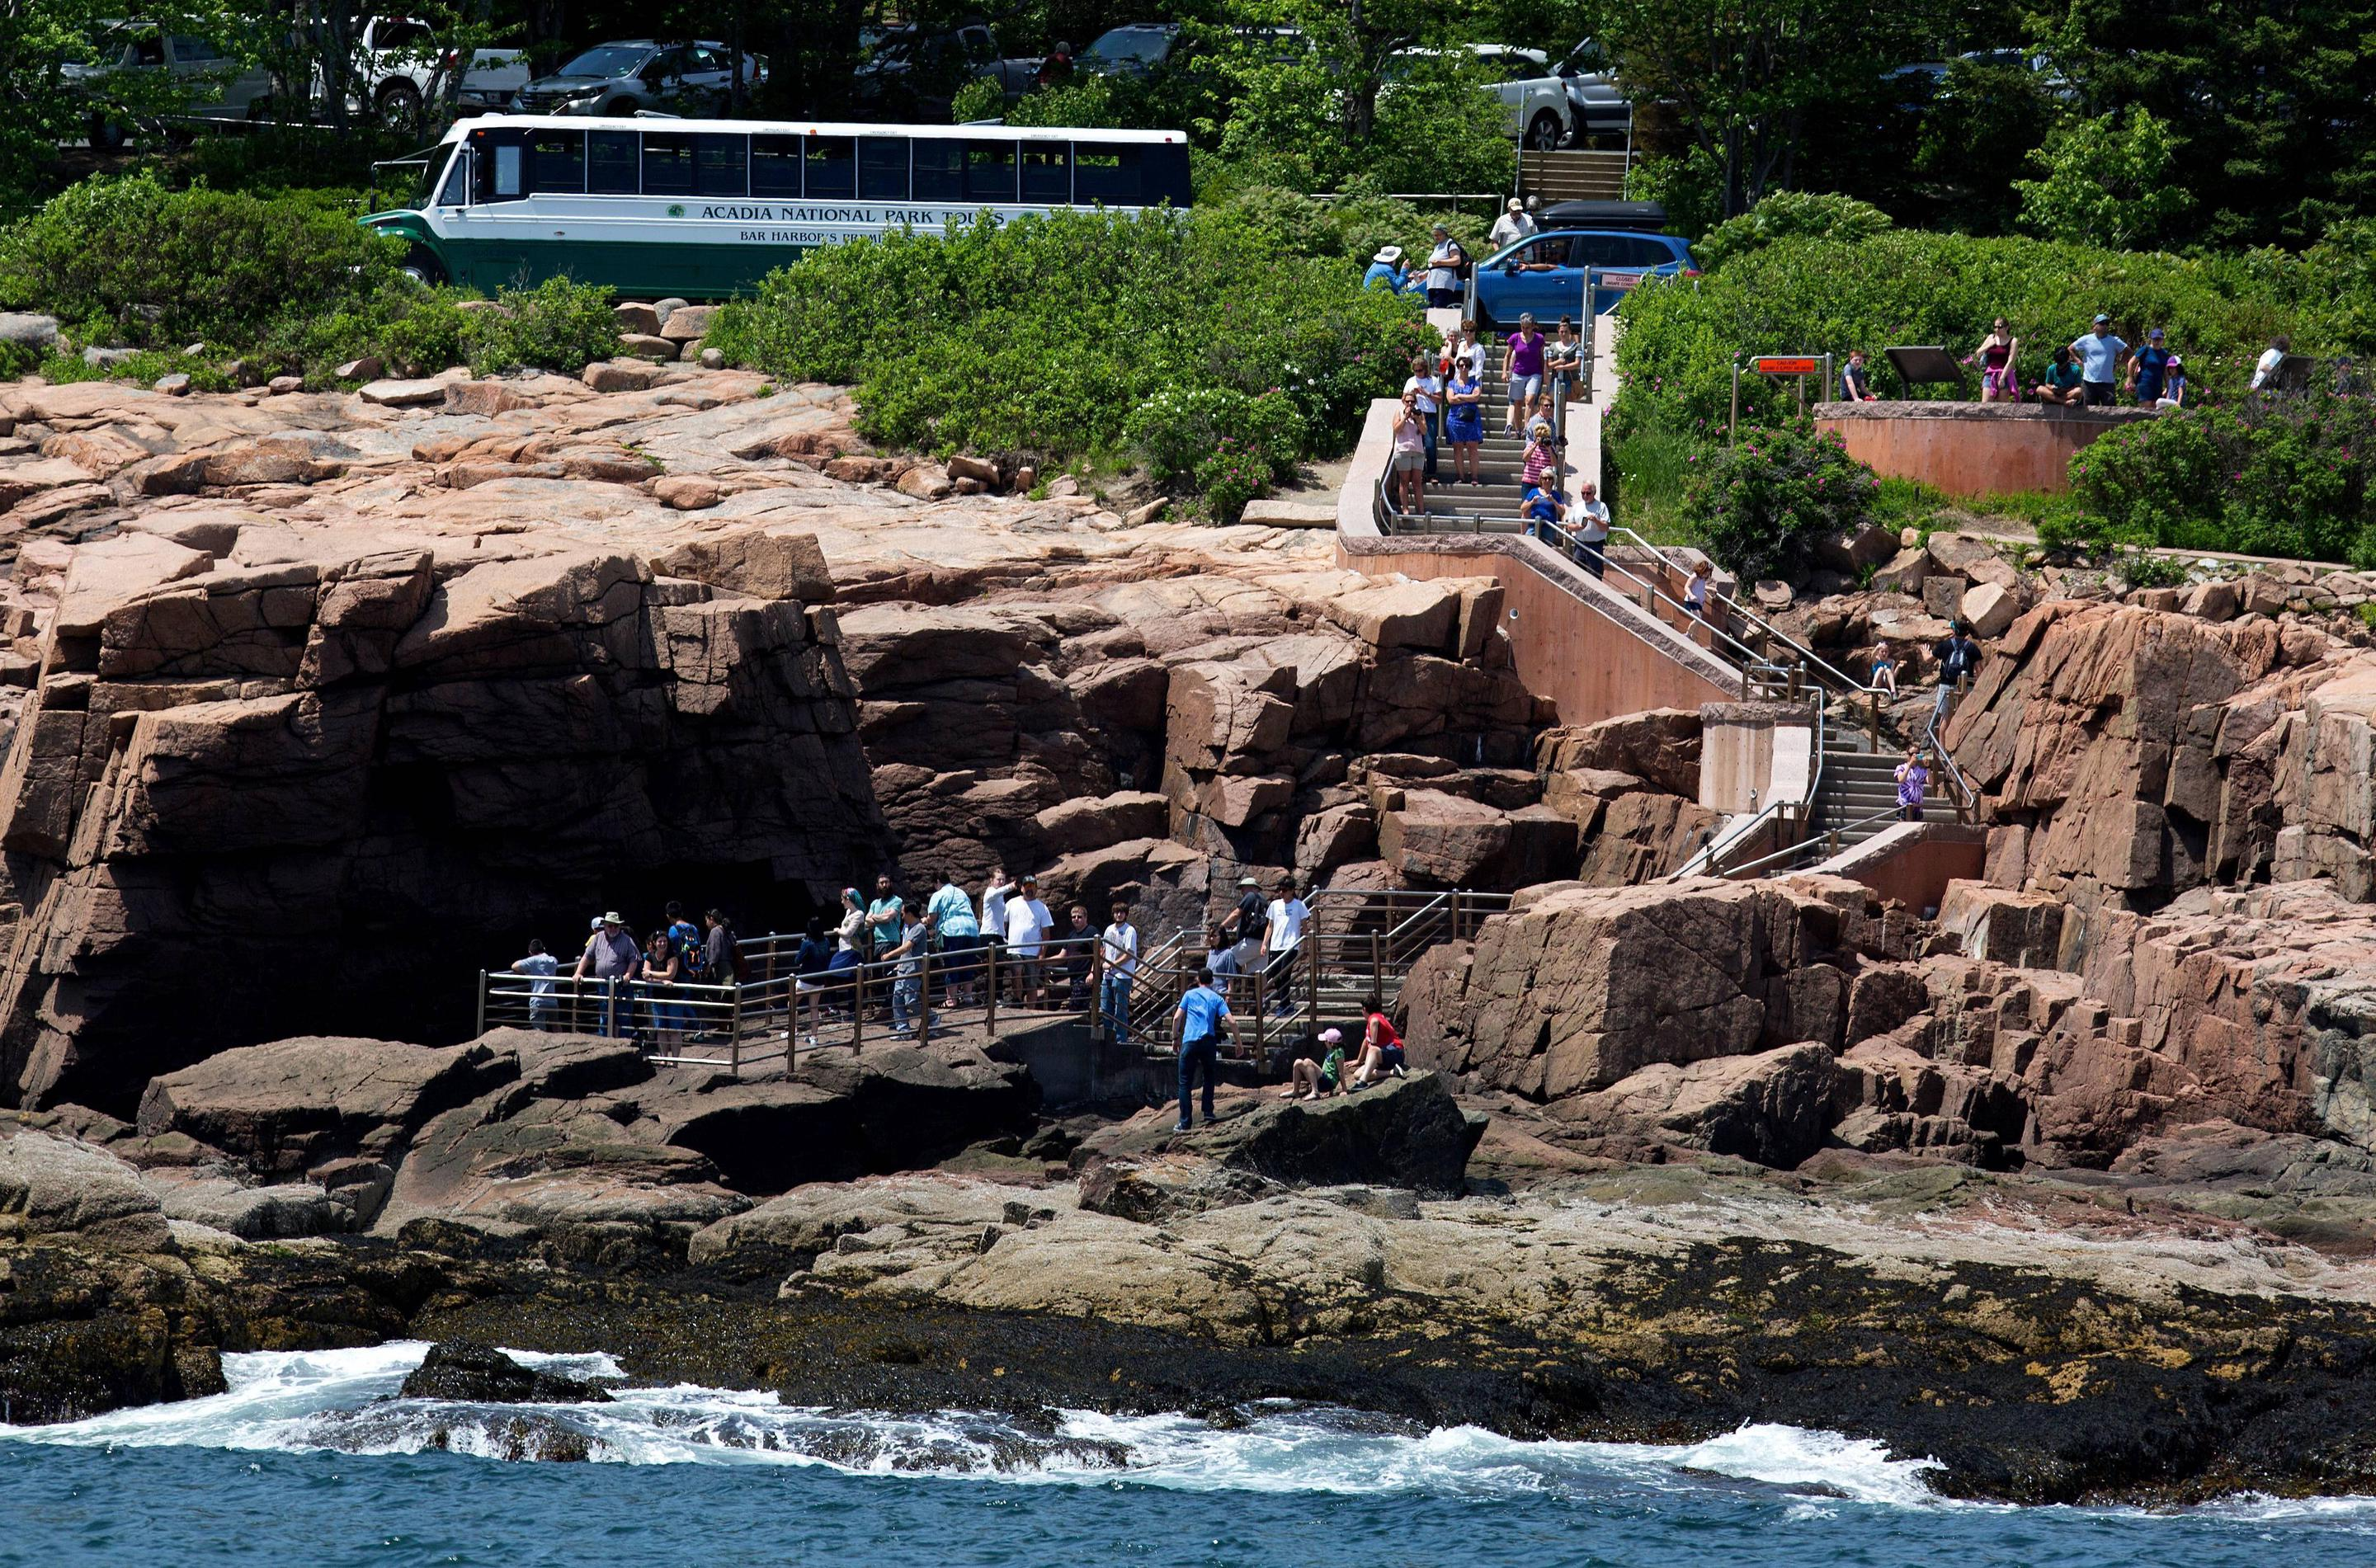 Along a rocky coastline, visitors crowd around railings and stone stairways from a busy road and parking area.Visitors clamber around railings at Thunder Hole.